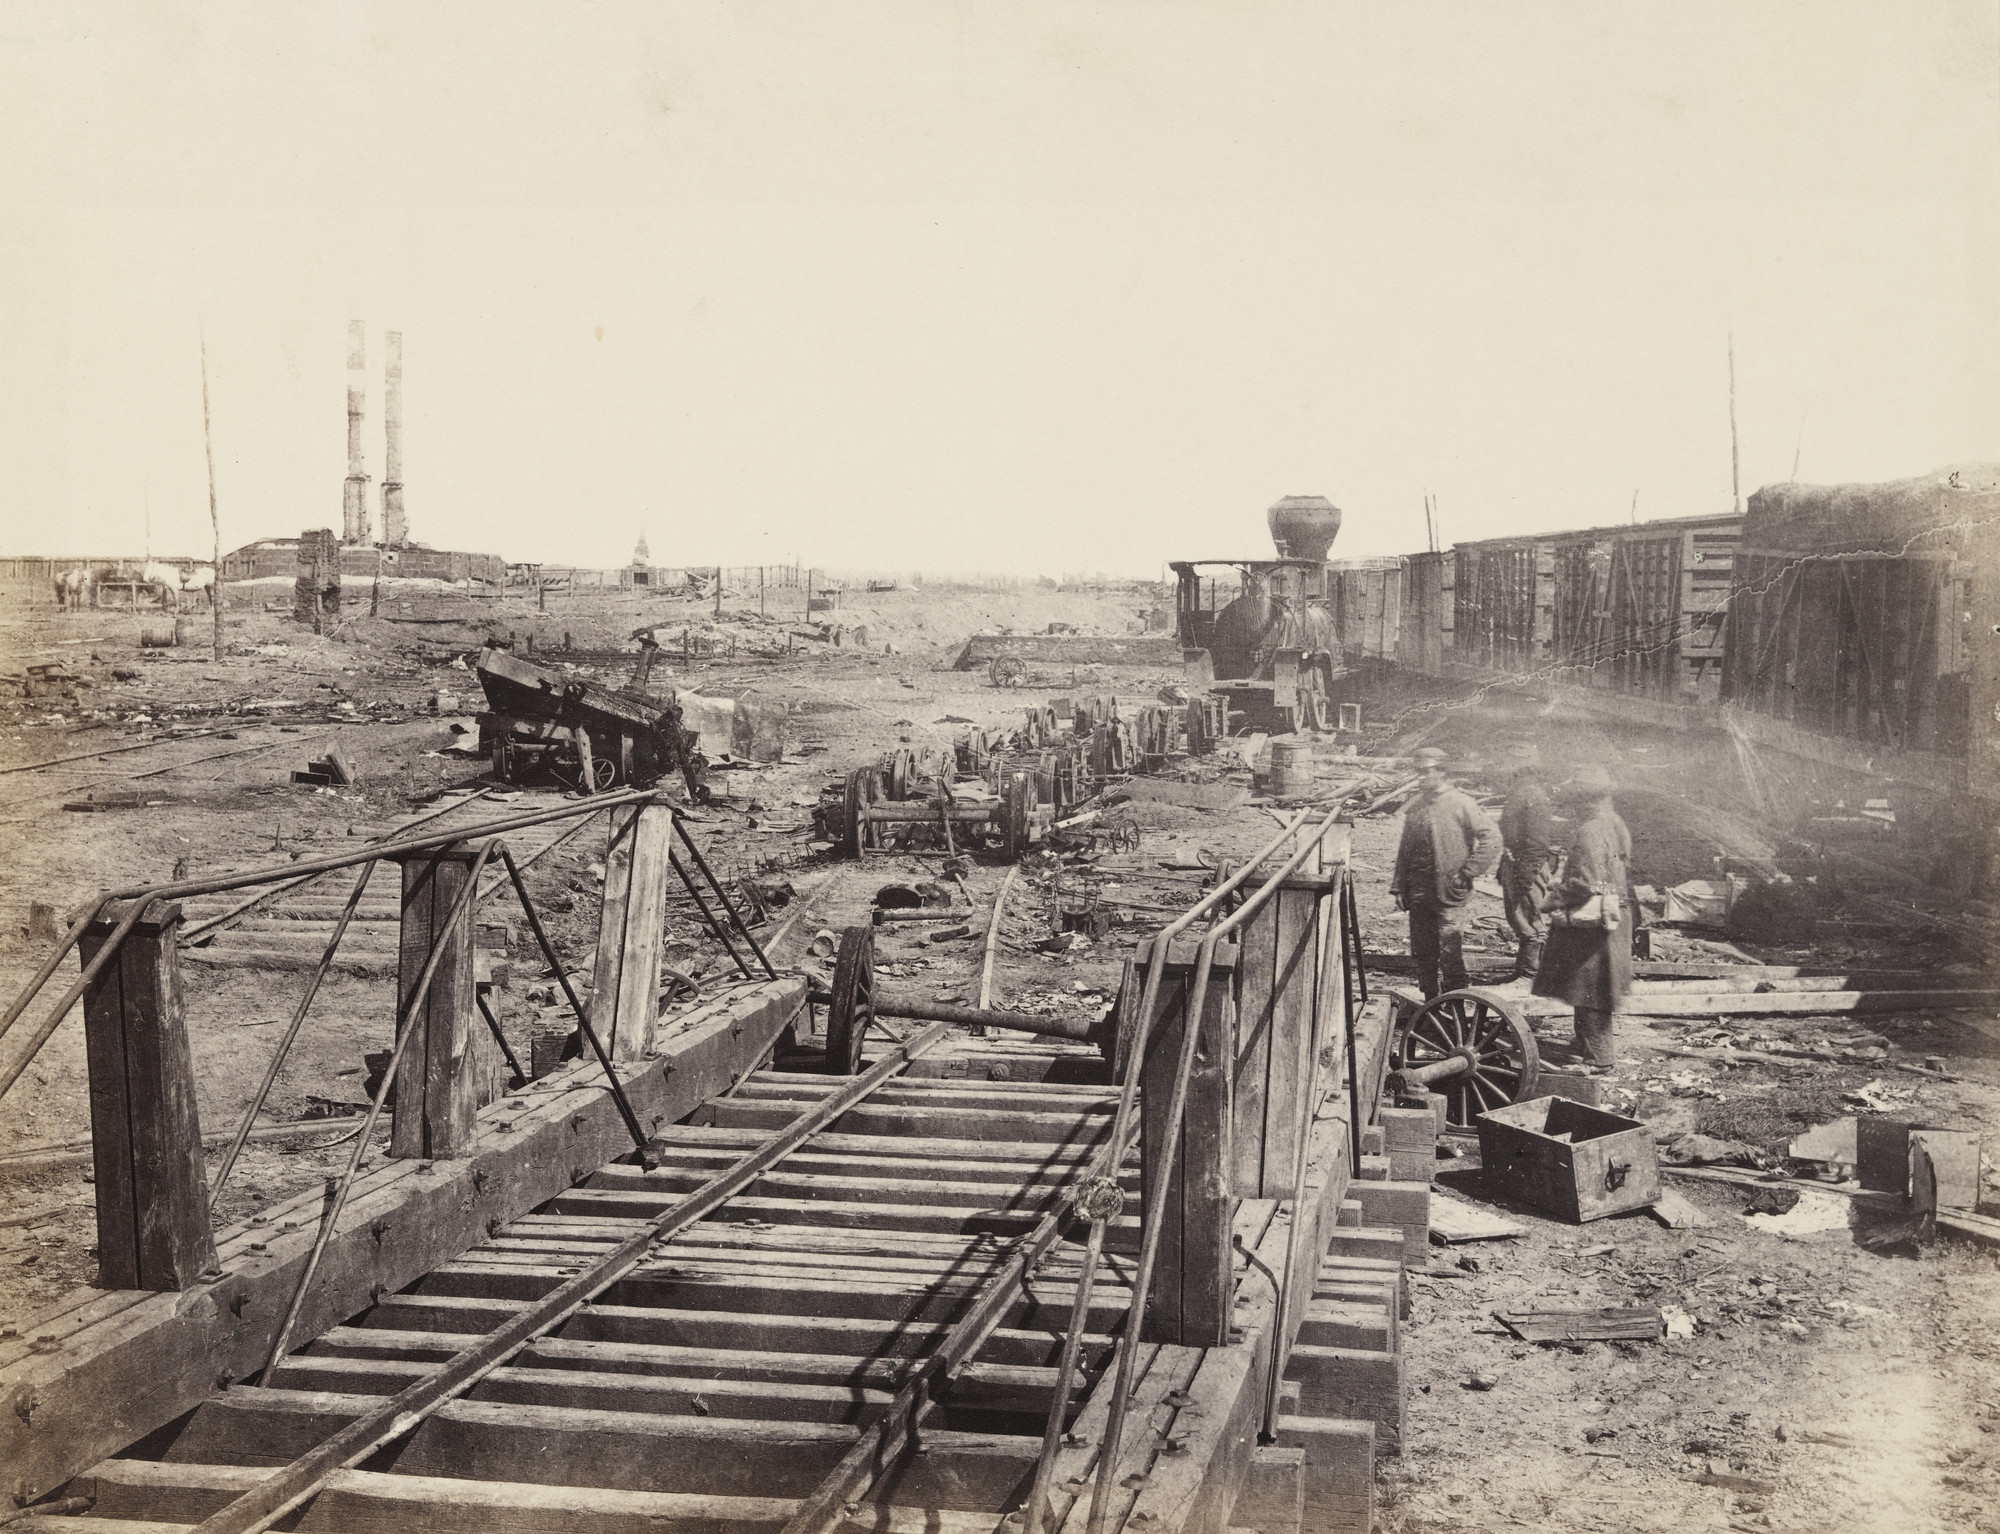 Alexander Gardner. Ruins at Manassas Junction. March 1862